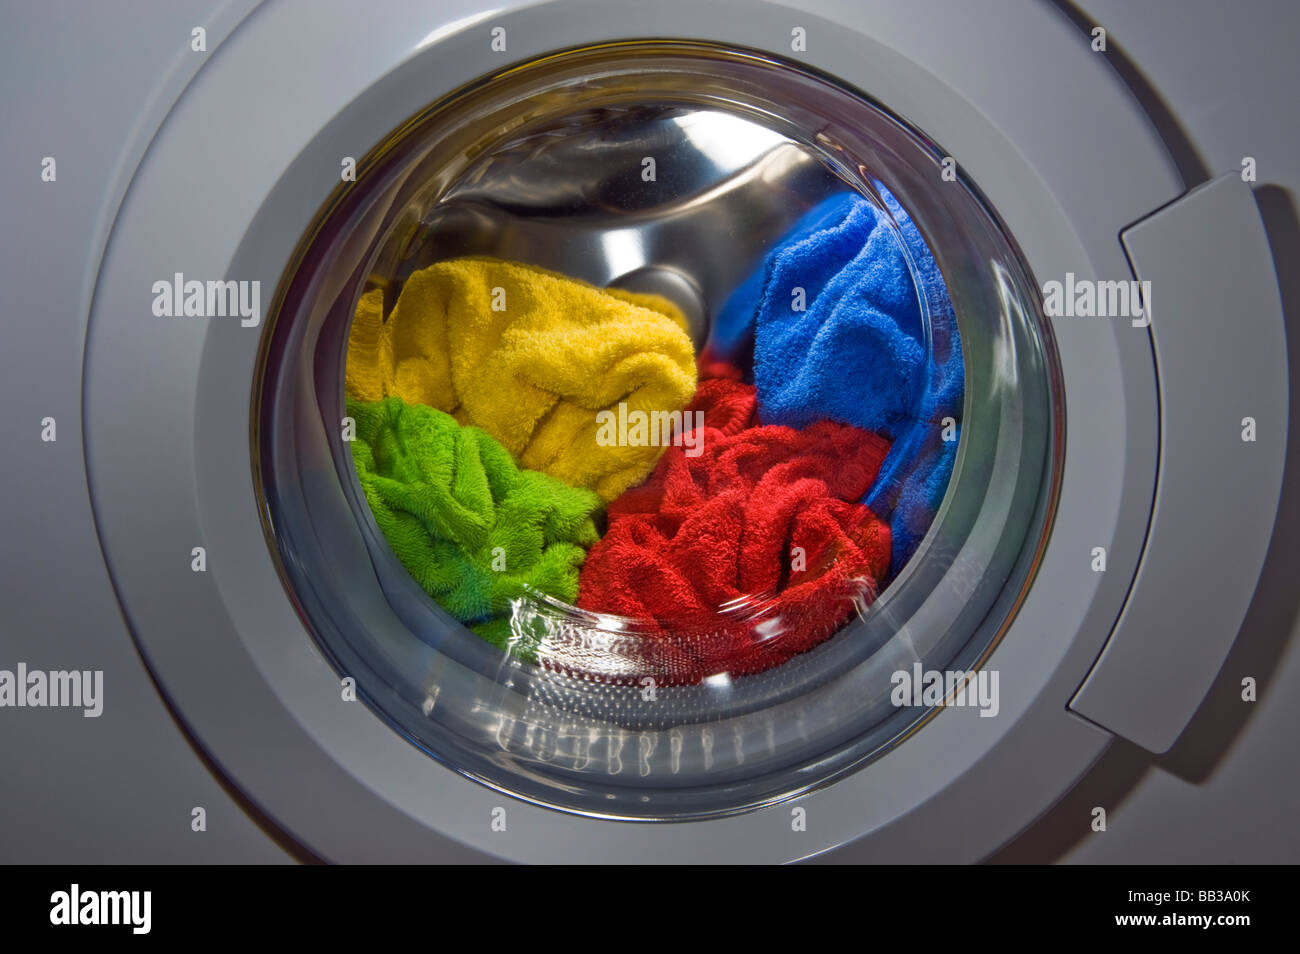 Laundry washing machine wash cycle clean cleaner wear clothes casual stock photo royalty free - Protect clothes colors washing ...